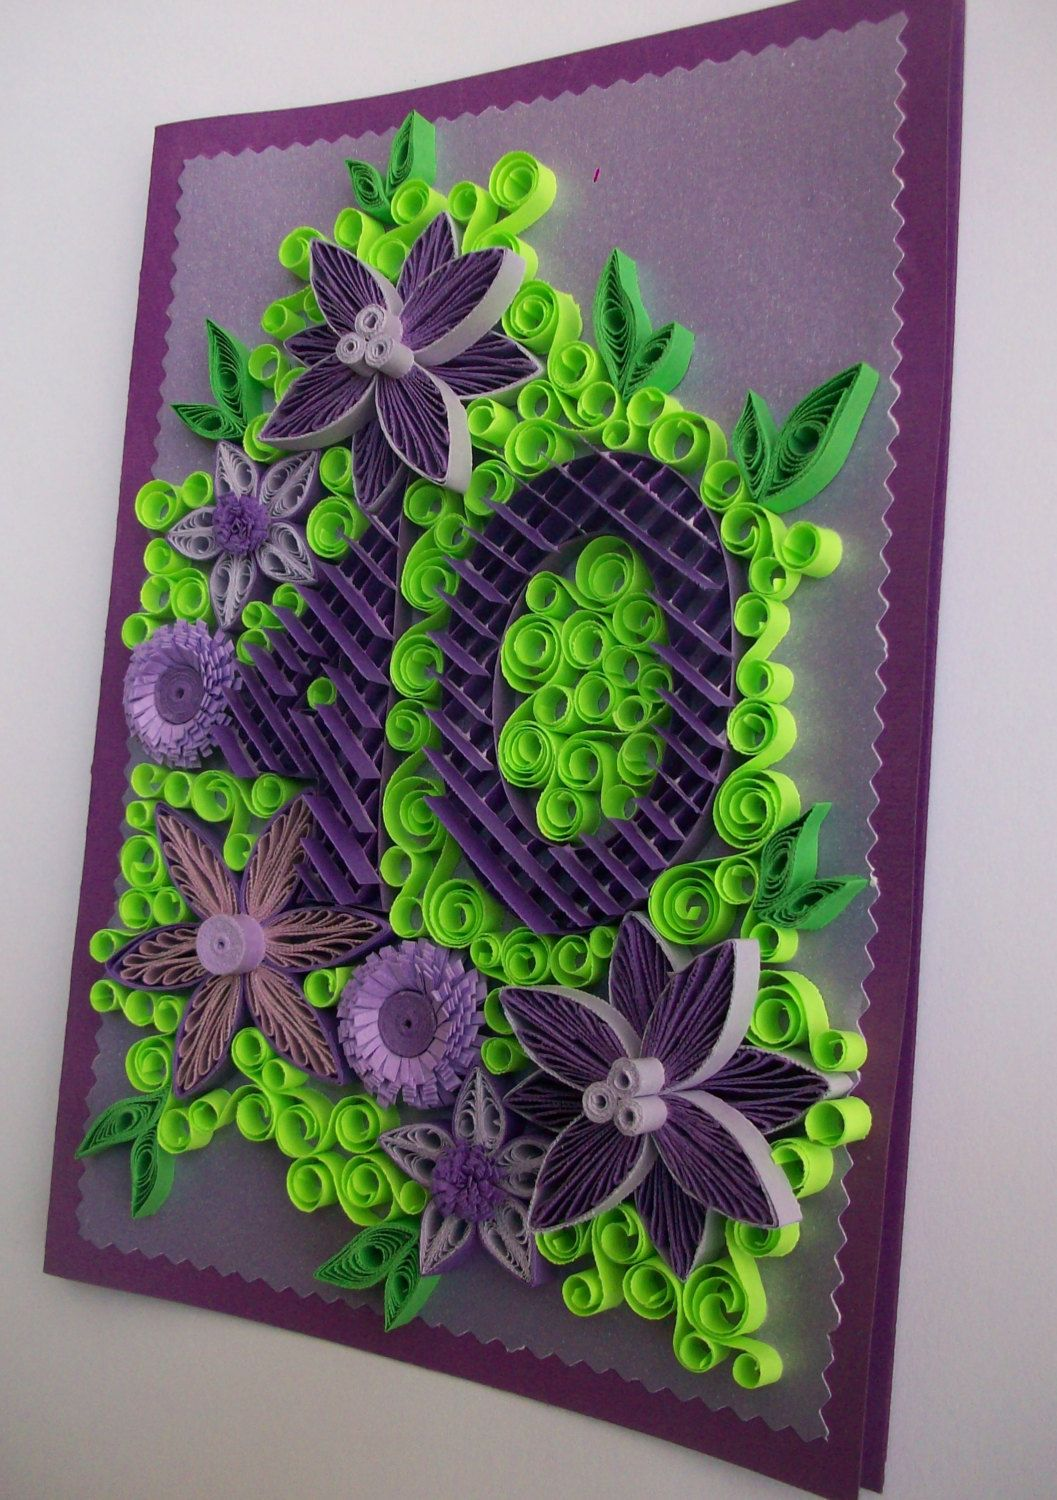 Birthday Anniversary Quilling card,  Greeting card,  Quilled Birthday card, Handmade Quilling Card,  Quilling Art Greeting Card de HandmadeTedy en Etsy